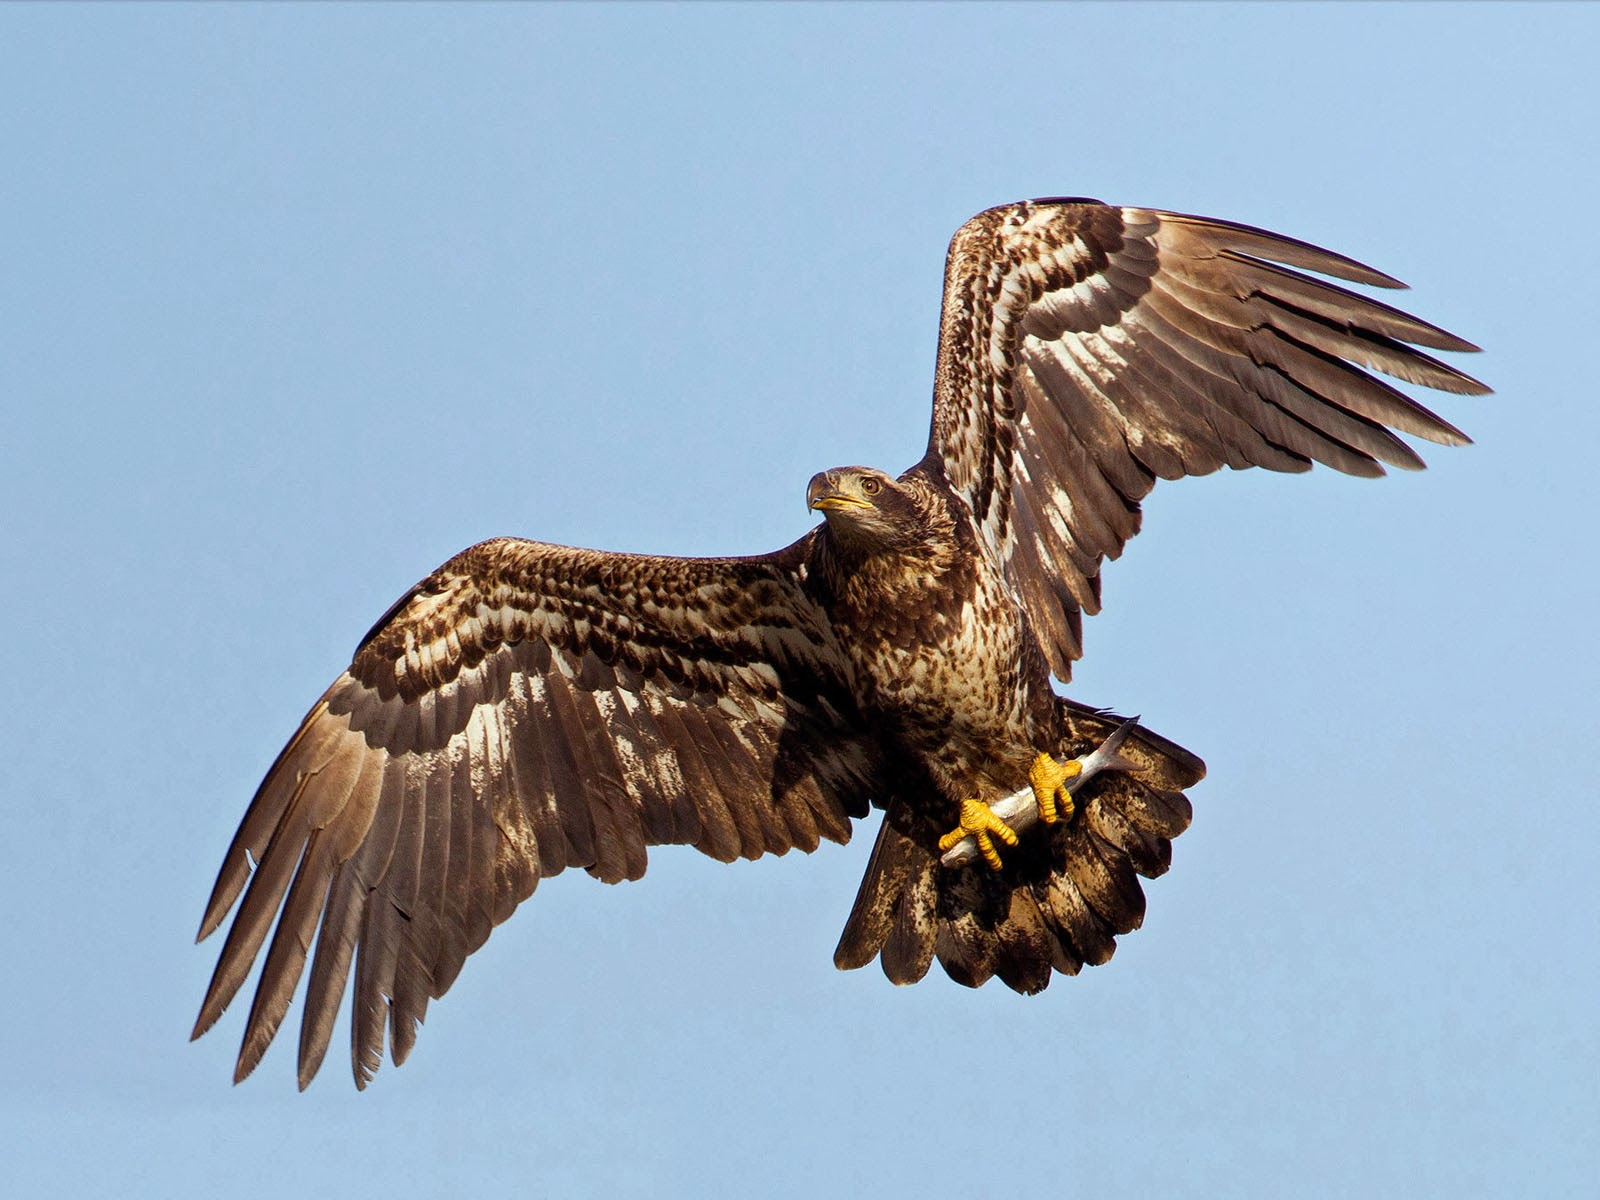 World Beautiful Cars Wallpapers Wallpapers Juvenile Bald Eagle Wallpapers